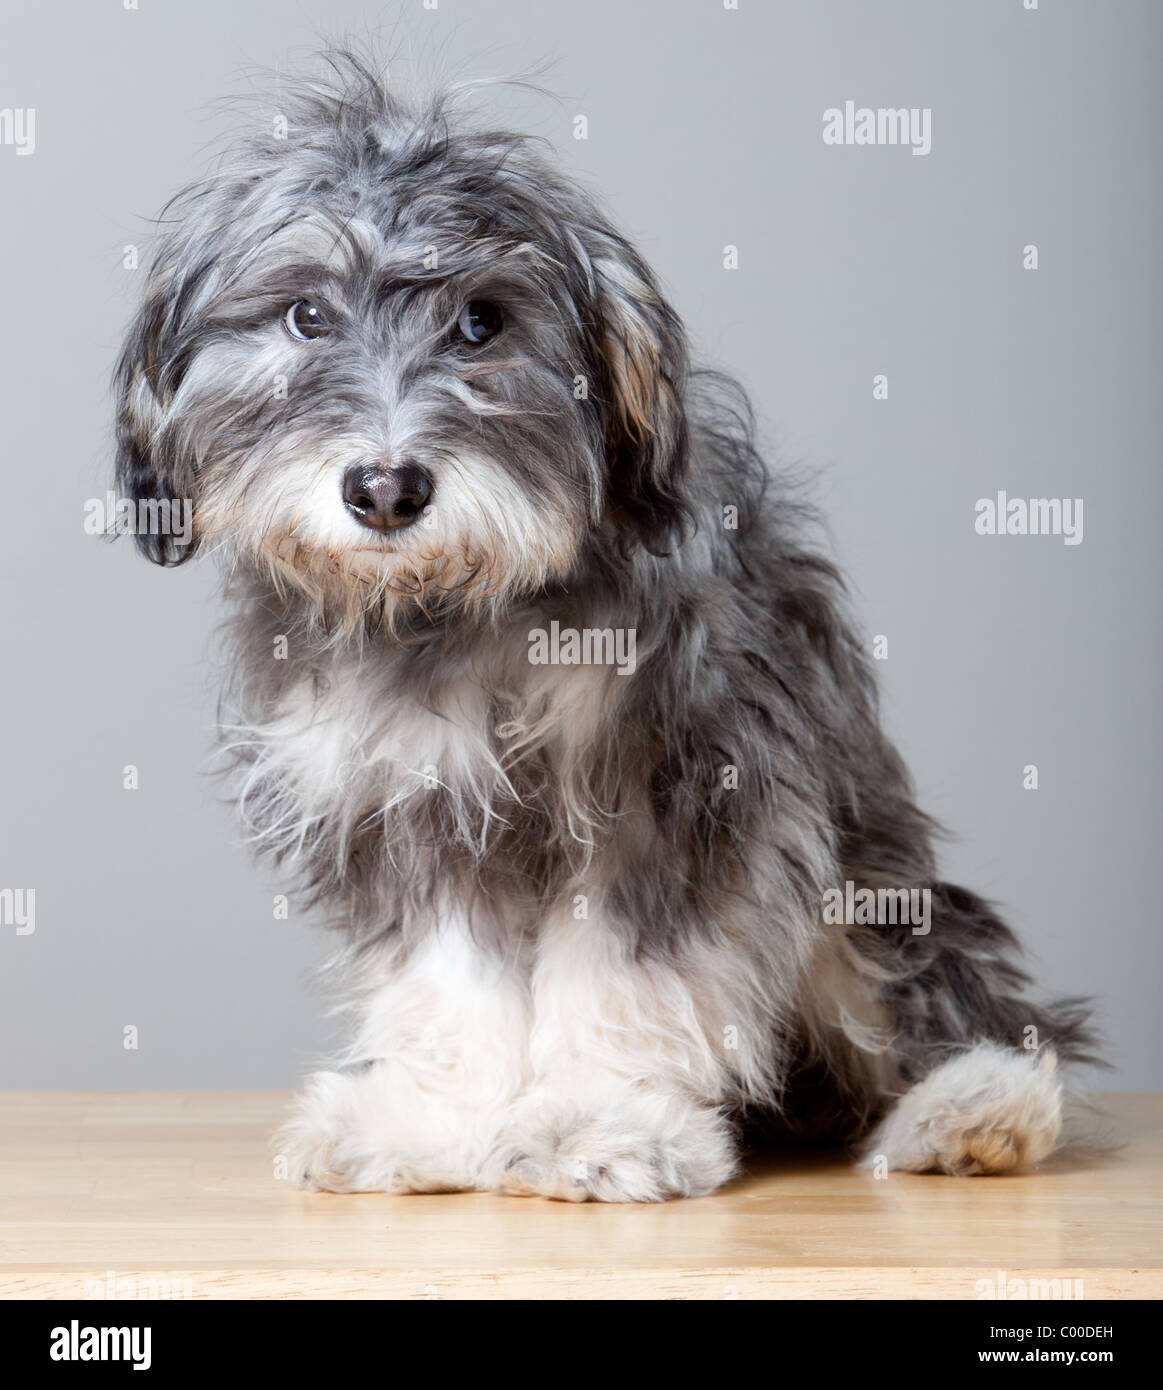 A Studio Portrait Of A Gray Shaggy Dog On A Light Colored Wooden